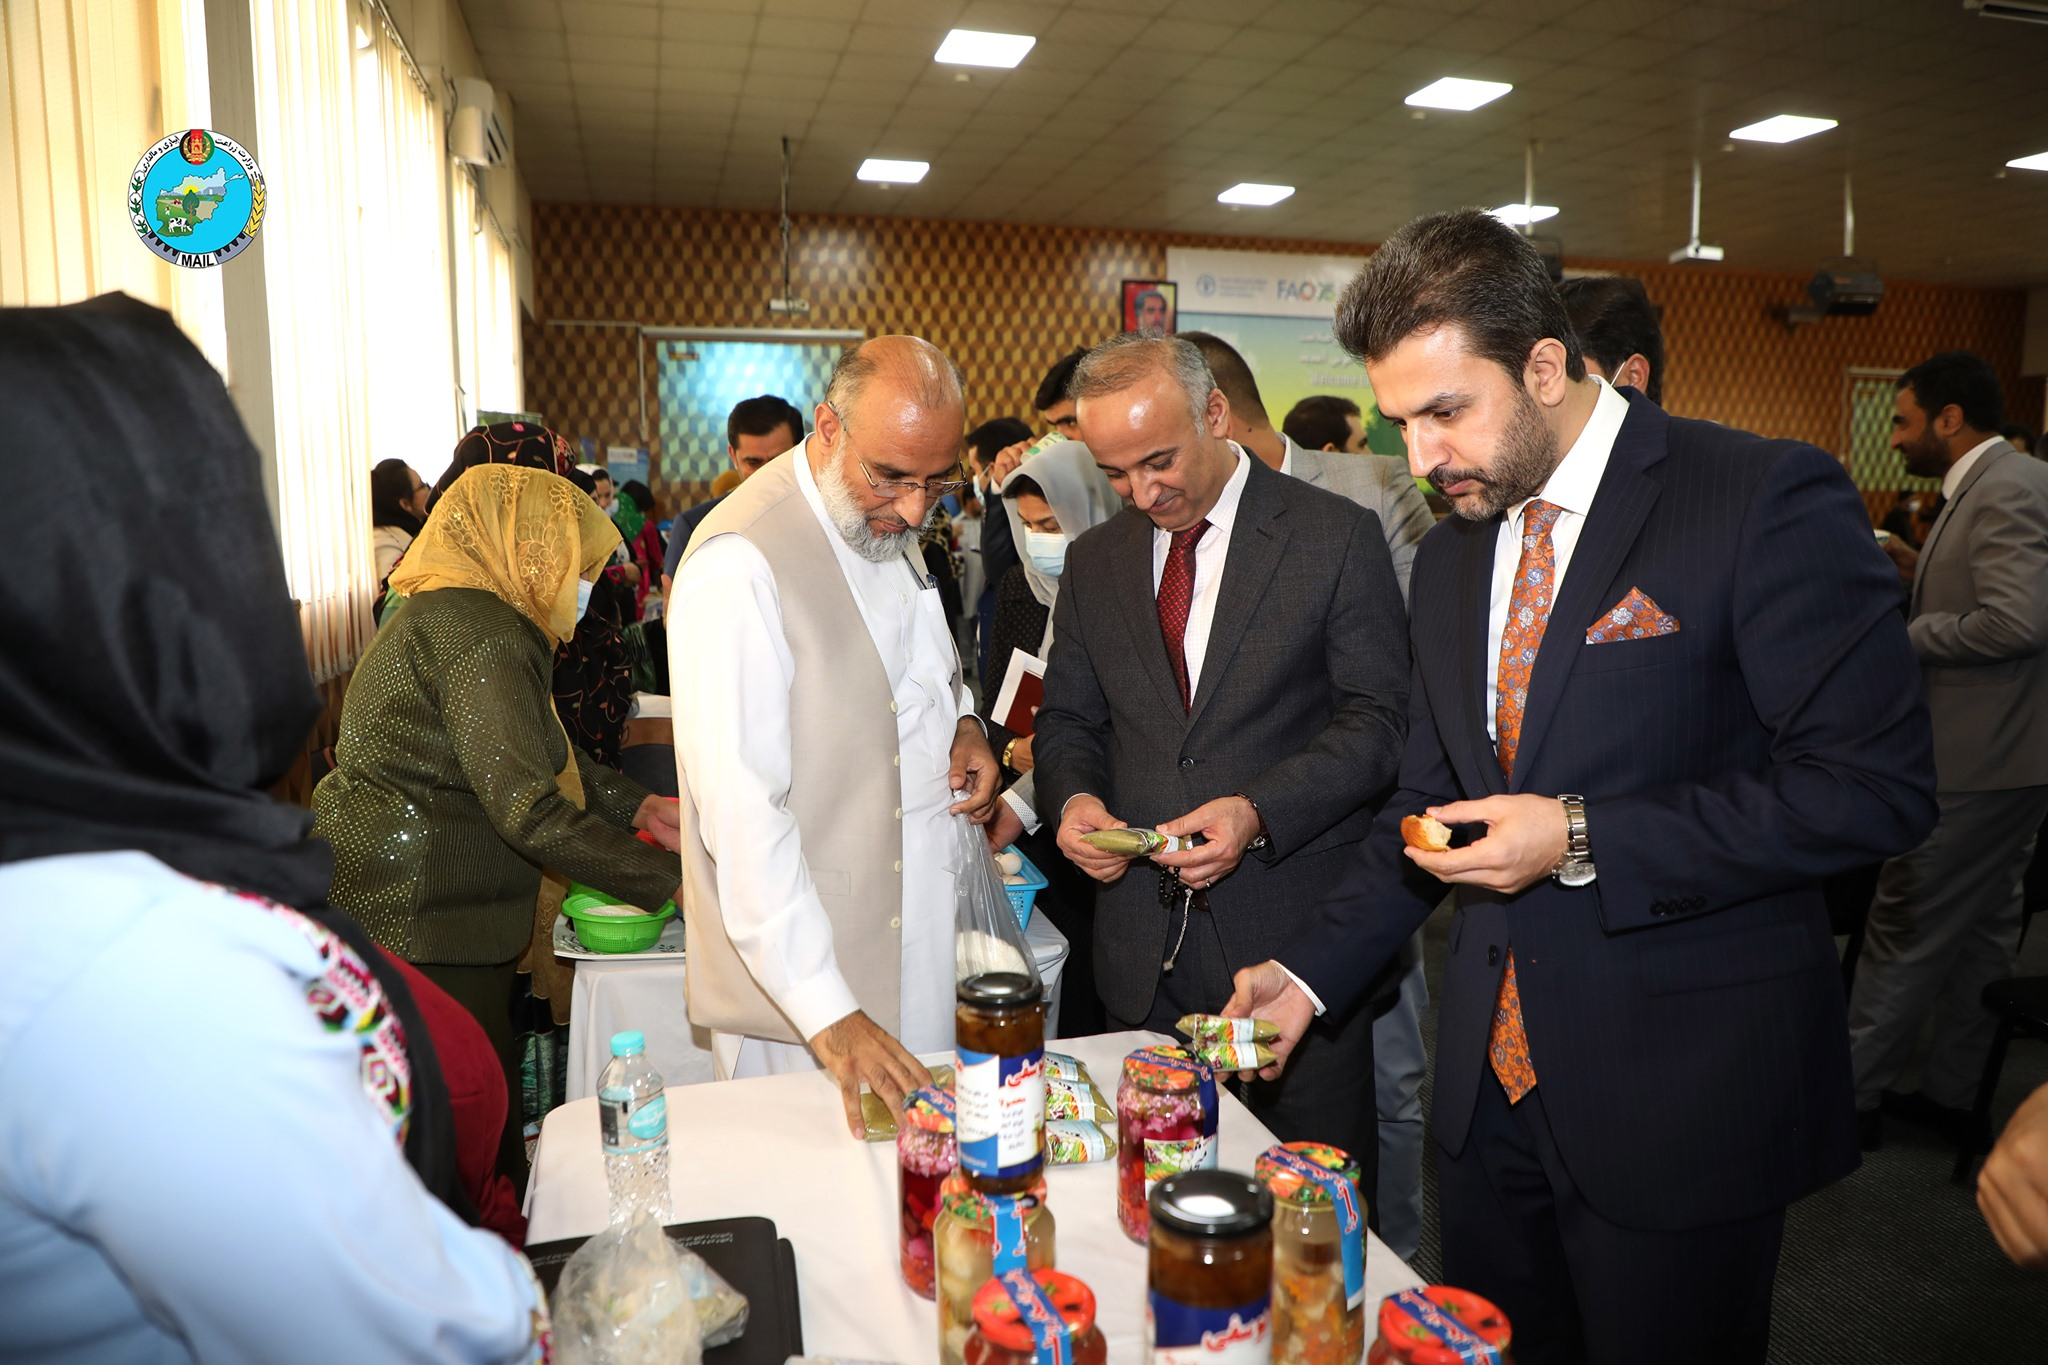 Food exhibition on celebration of the  World's Food Day at Ministry of Agriculture